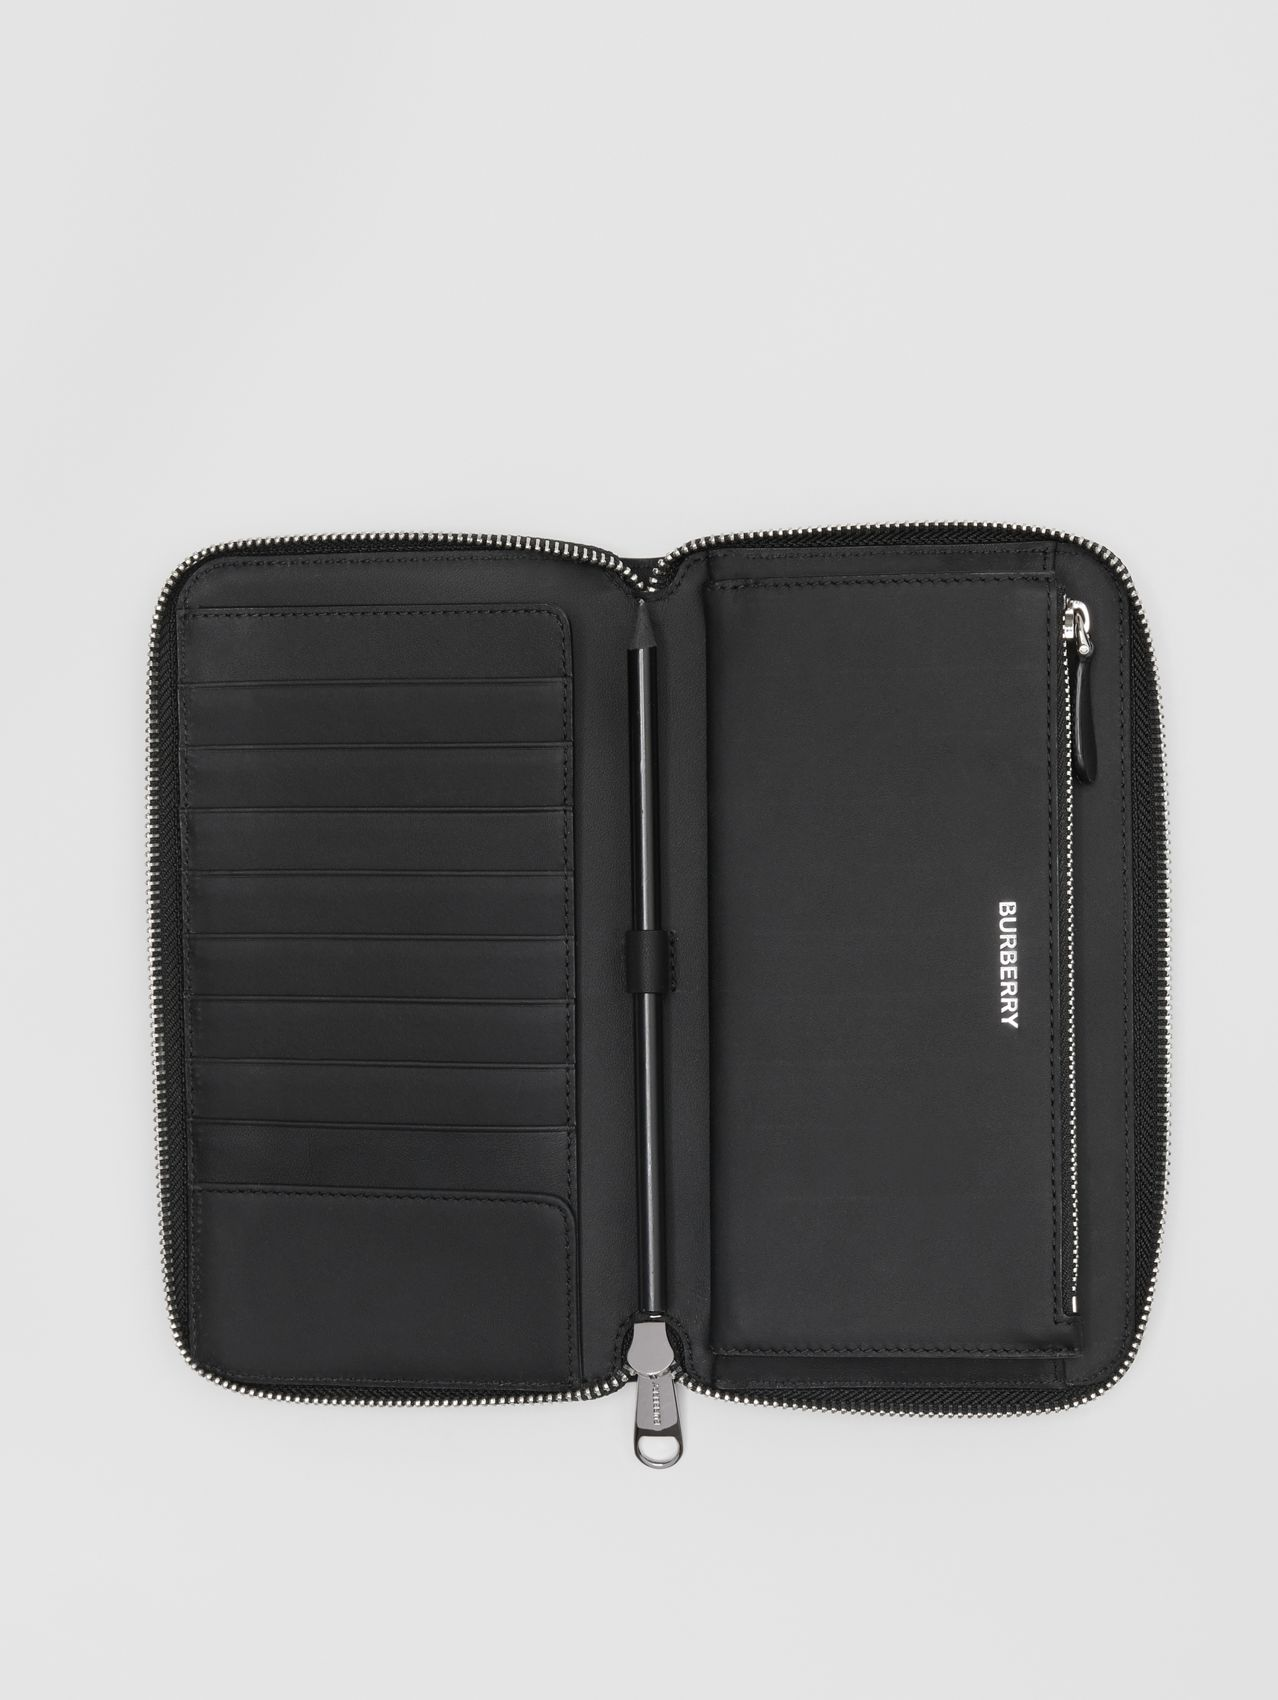 London Check and Leather Ziparound Wallet in Dark Charcoal